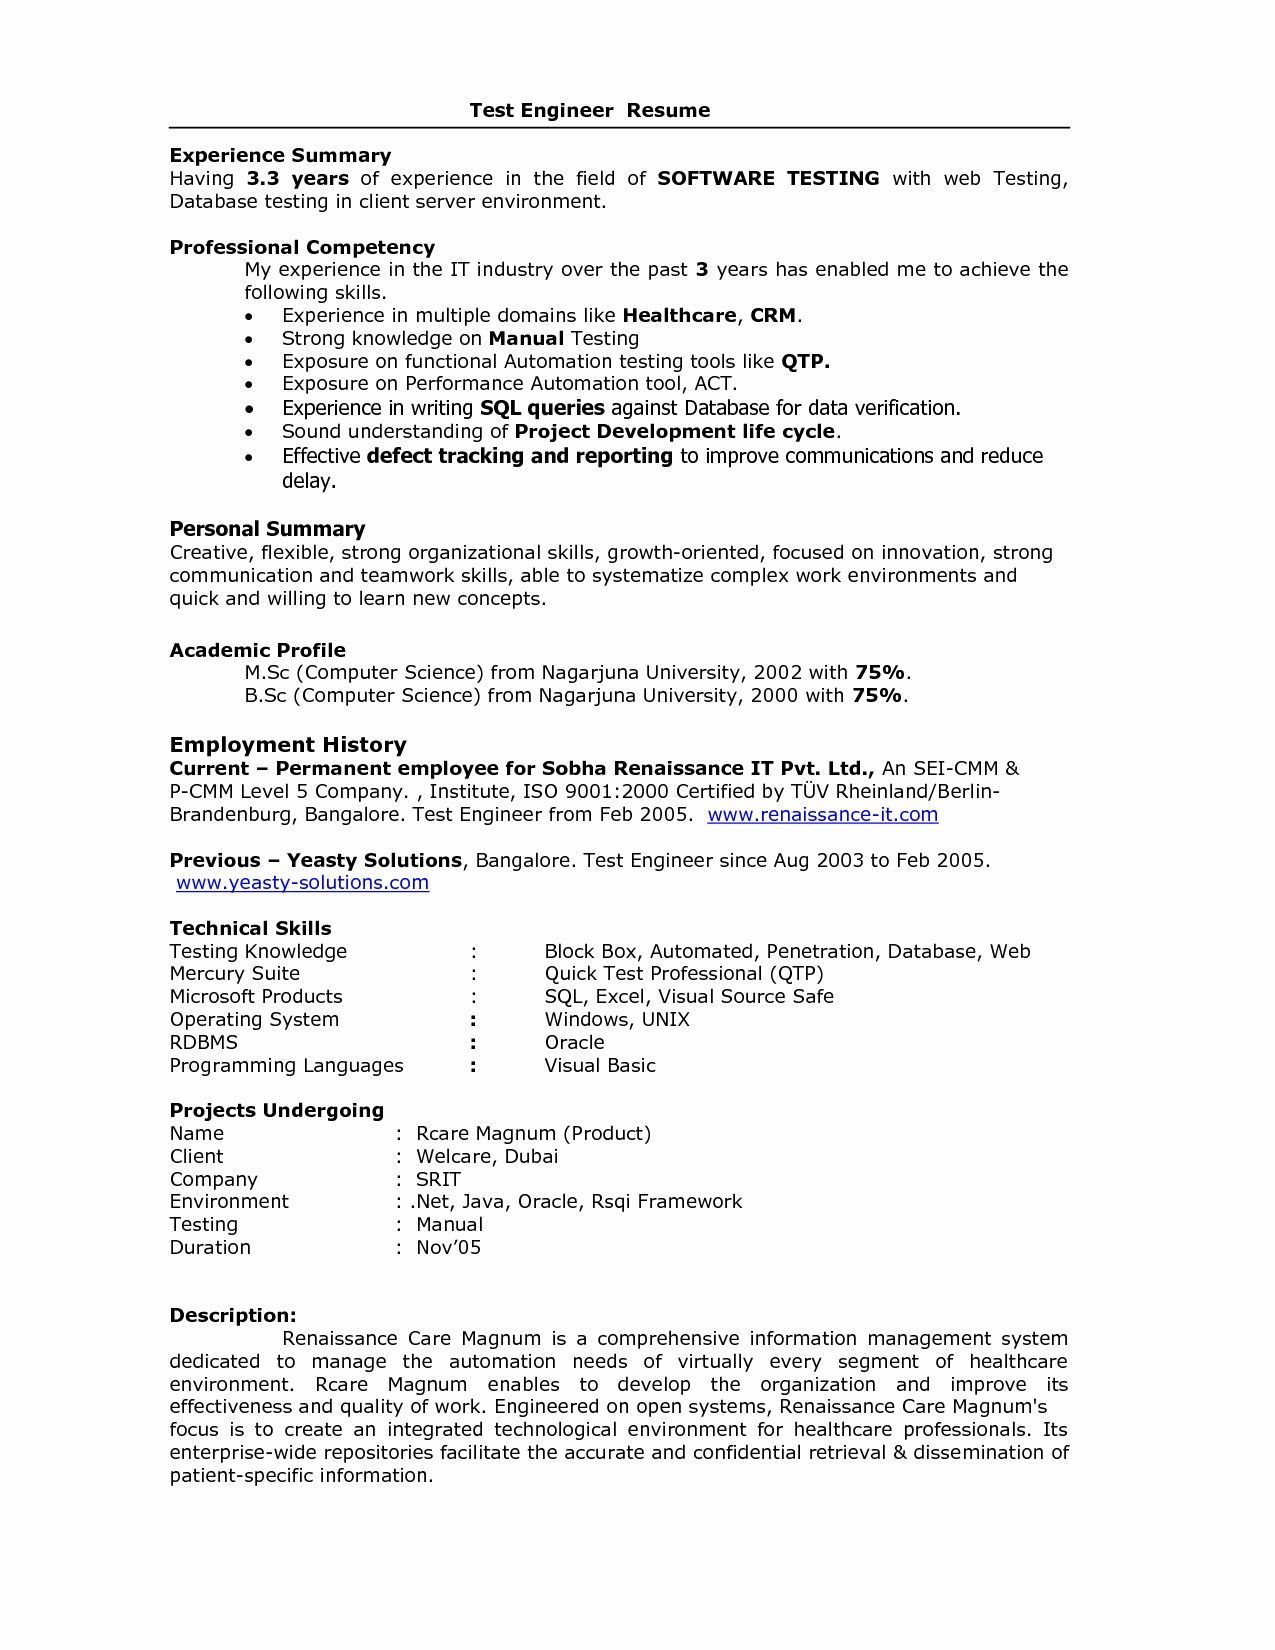 resume format for years experience in testing best sample software samples mortgage cover Resume Software Testing Resume Samples For 5 Years Experience